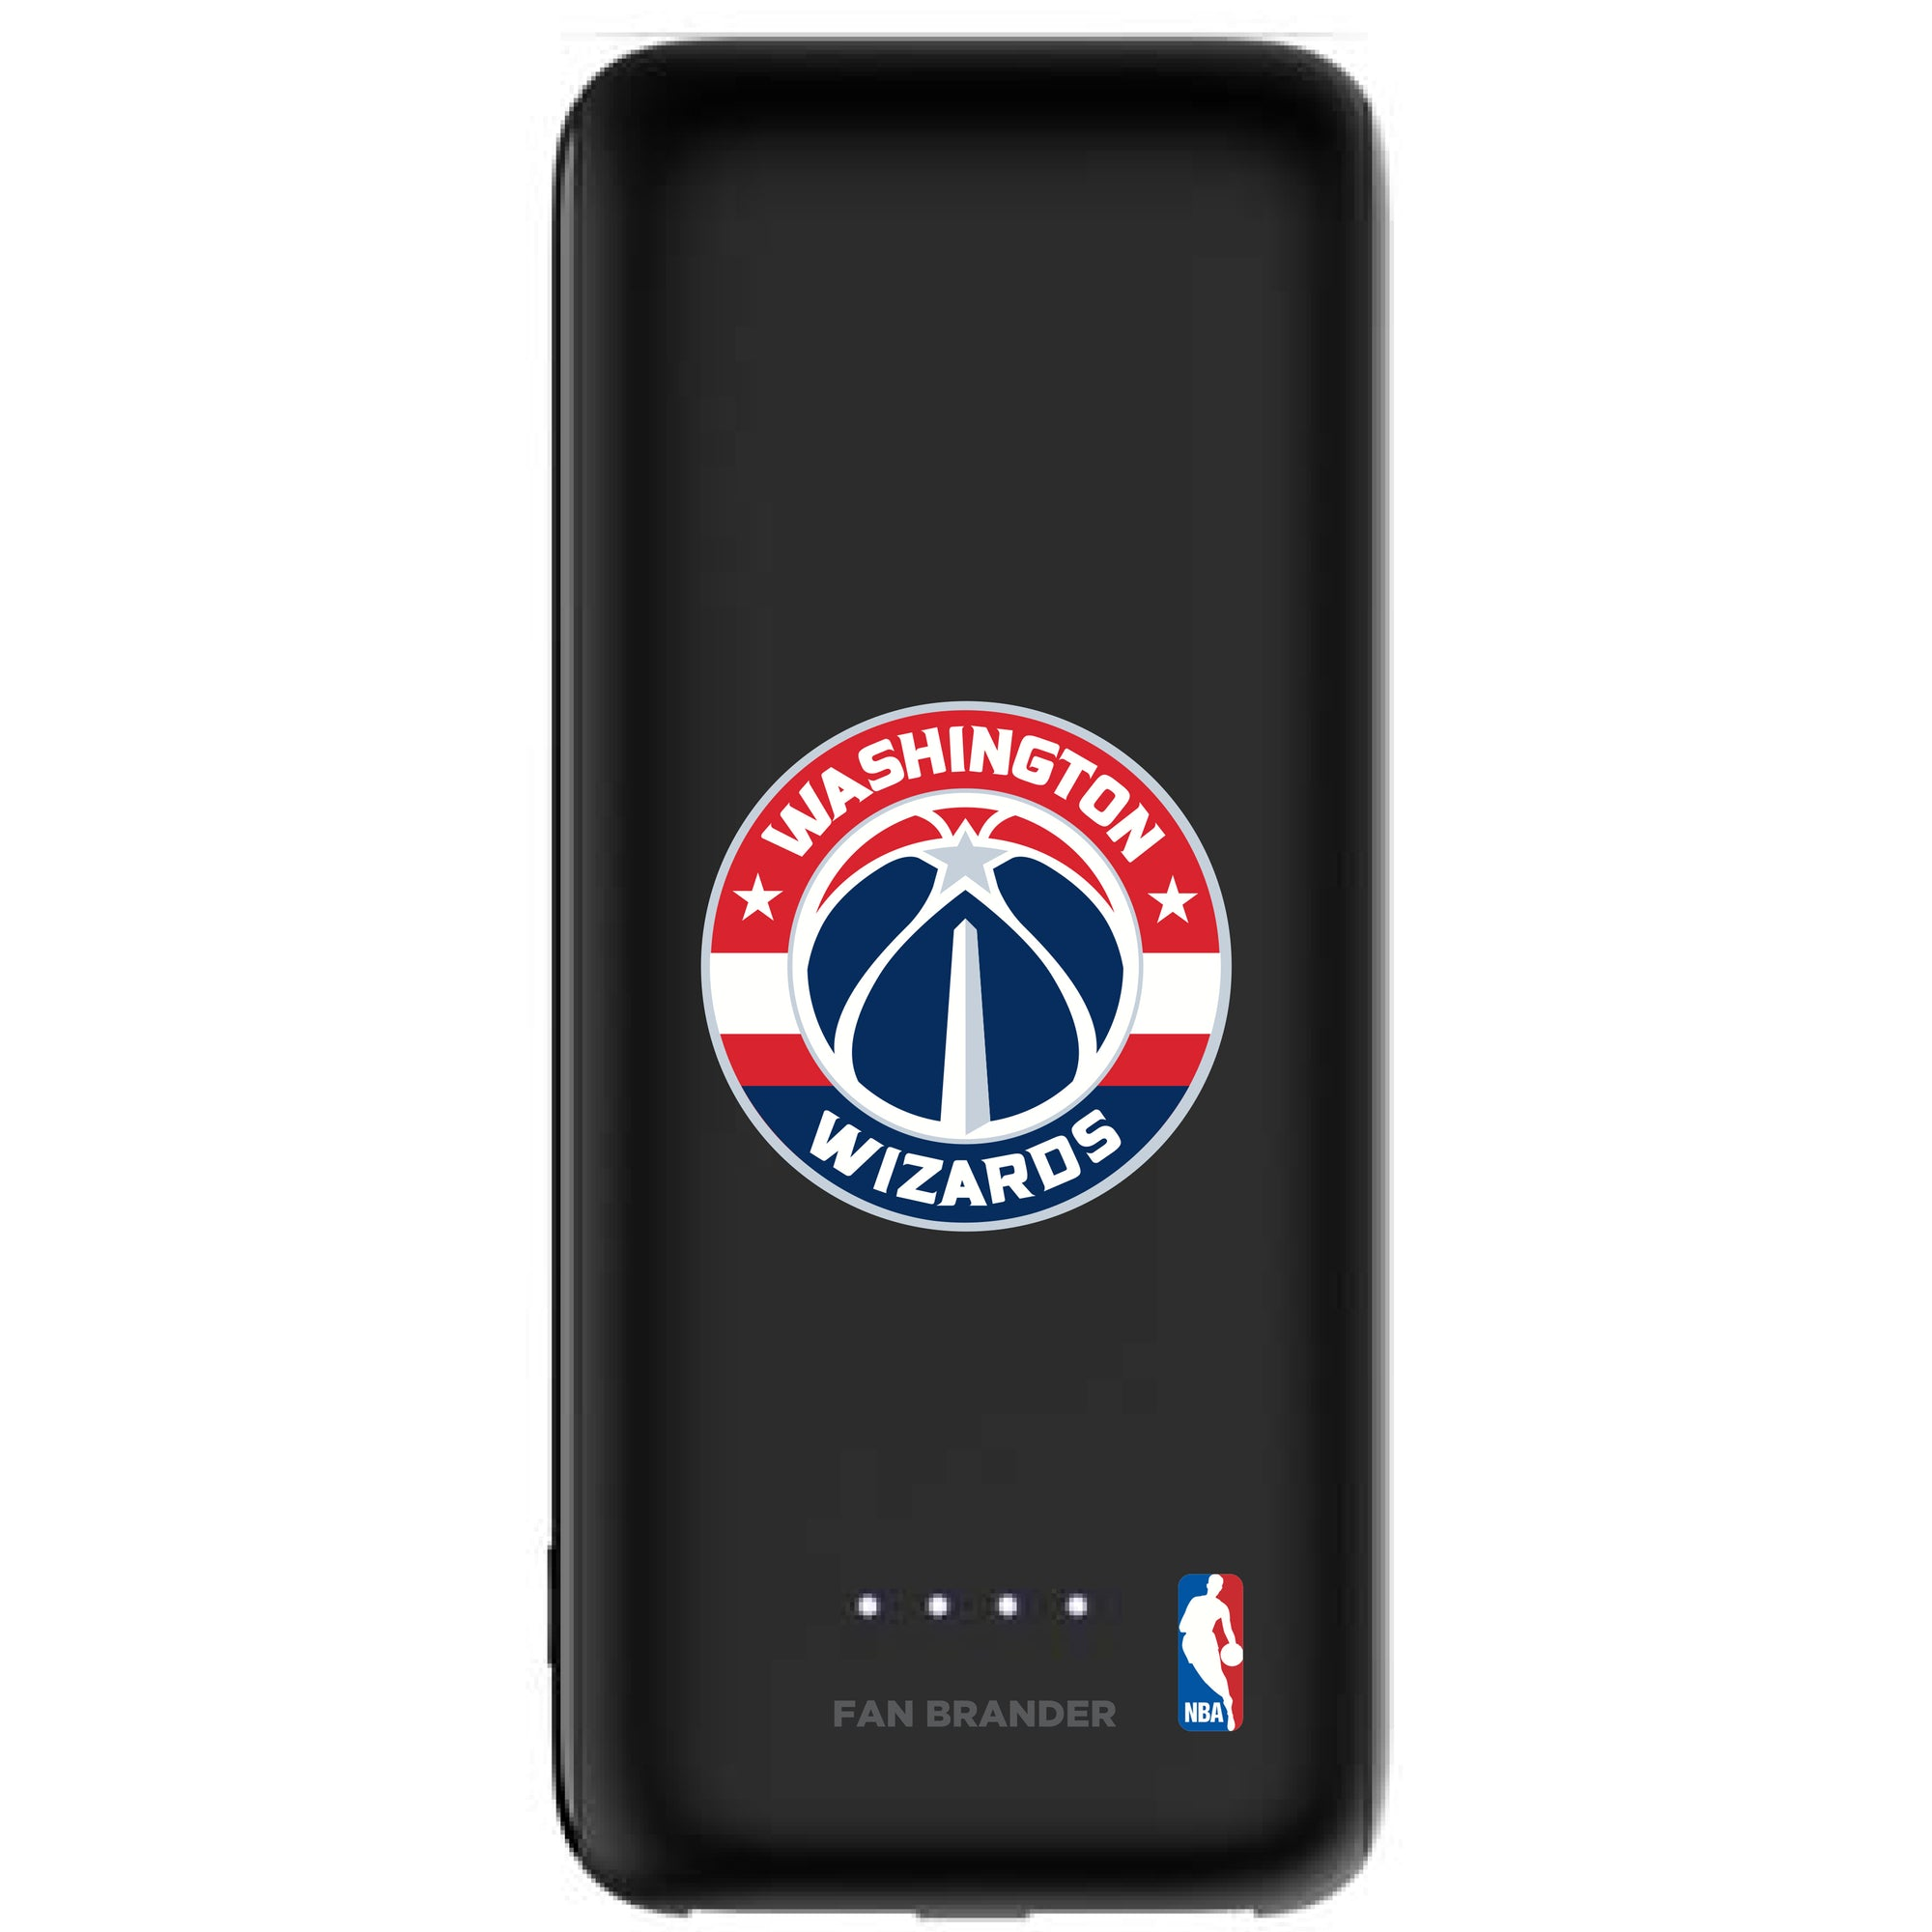 Washington Wizards Power Boost Mini 5,200 mAH